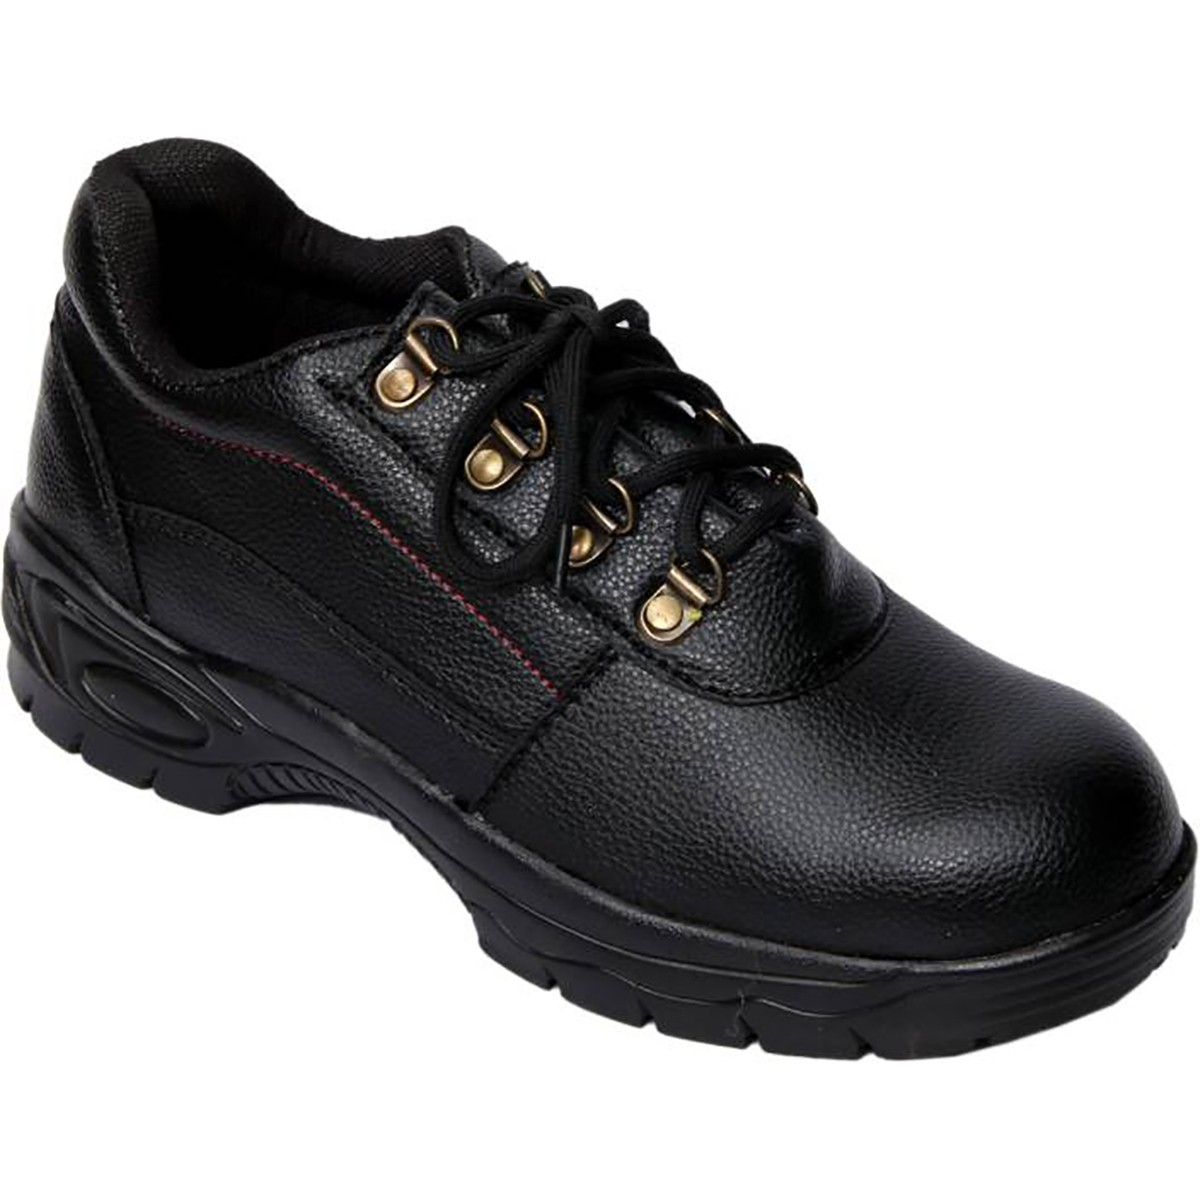 Pro Booster Gold PVC men's Safety Shoes Steel Toe